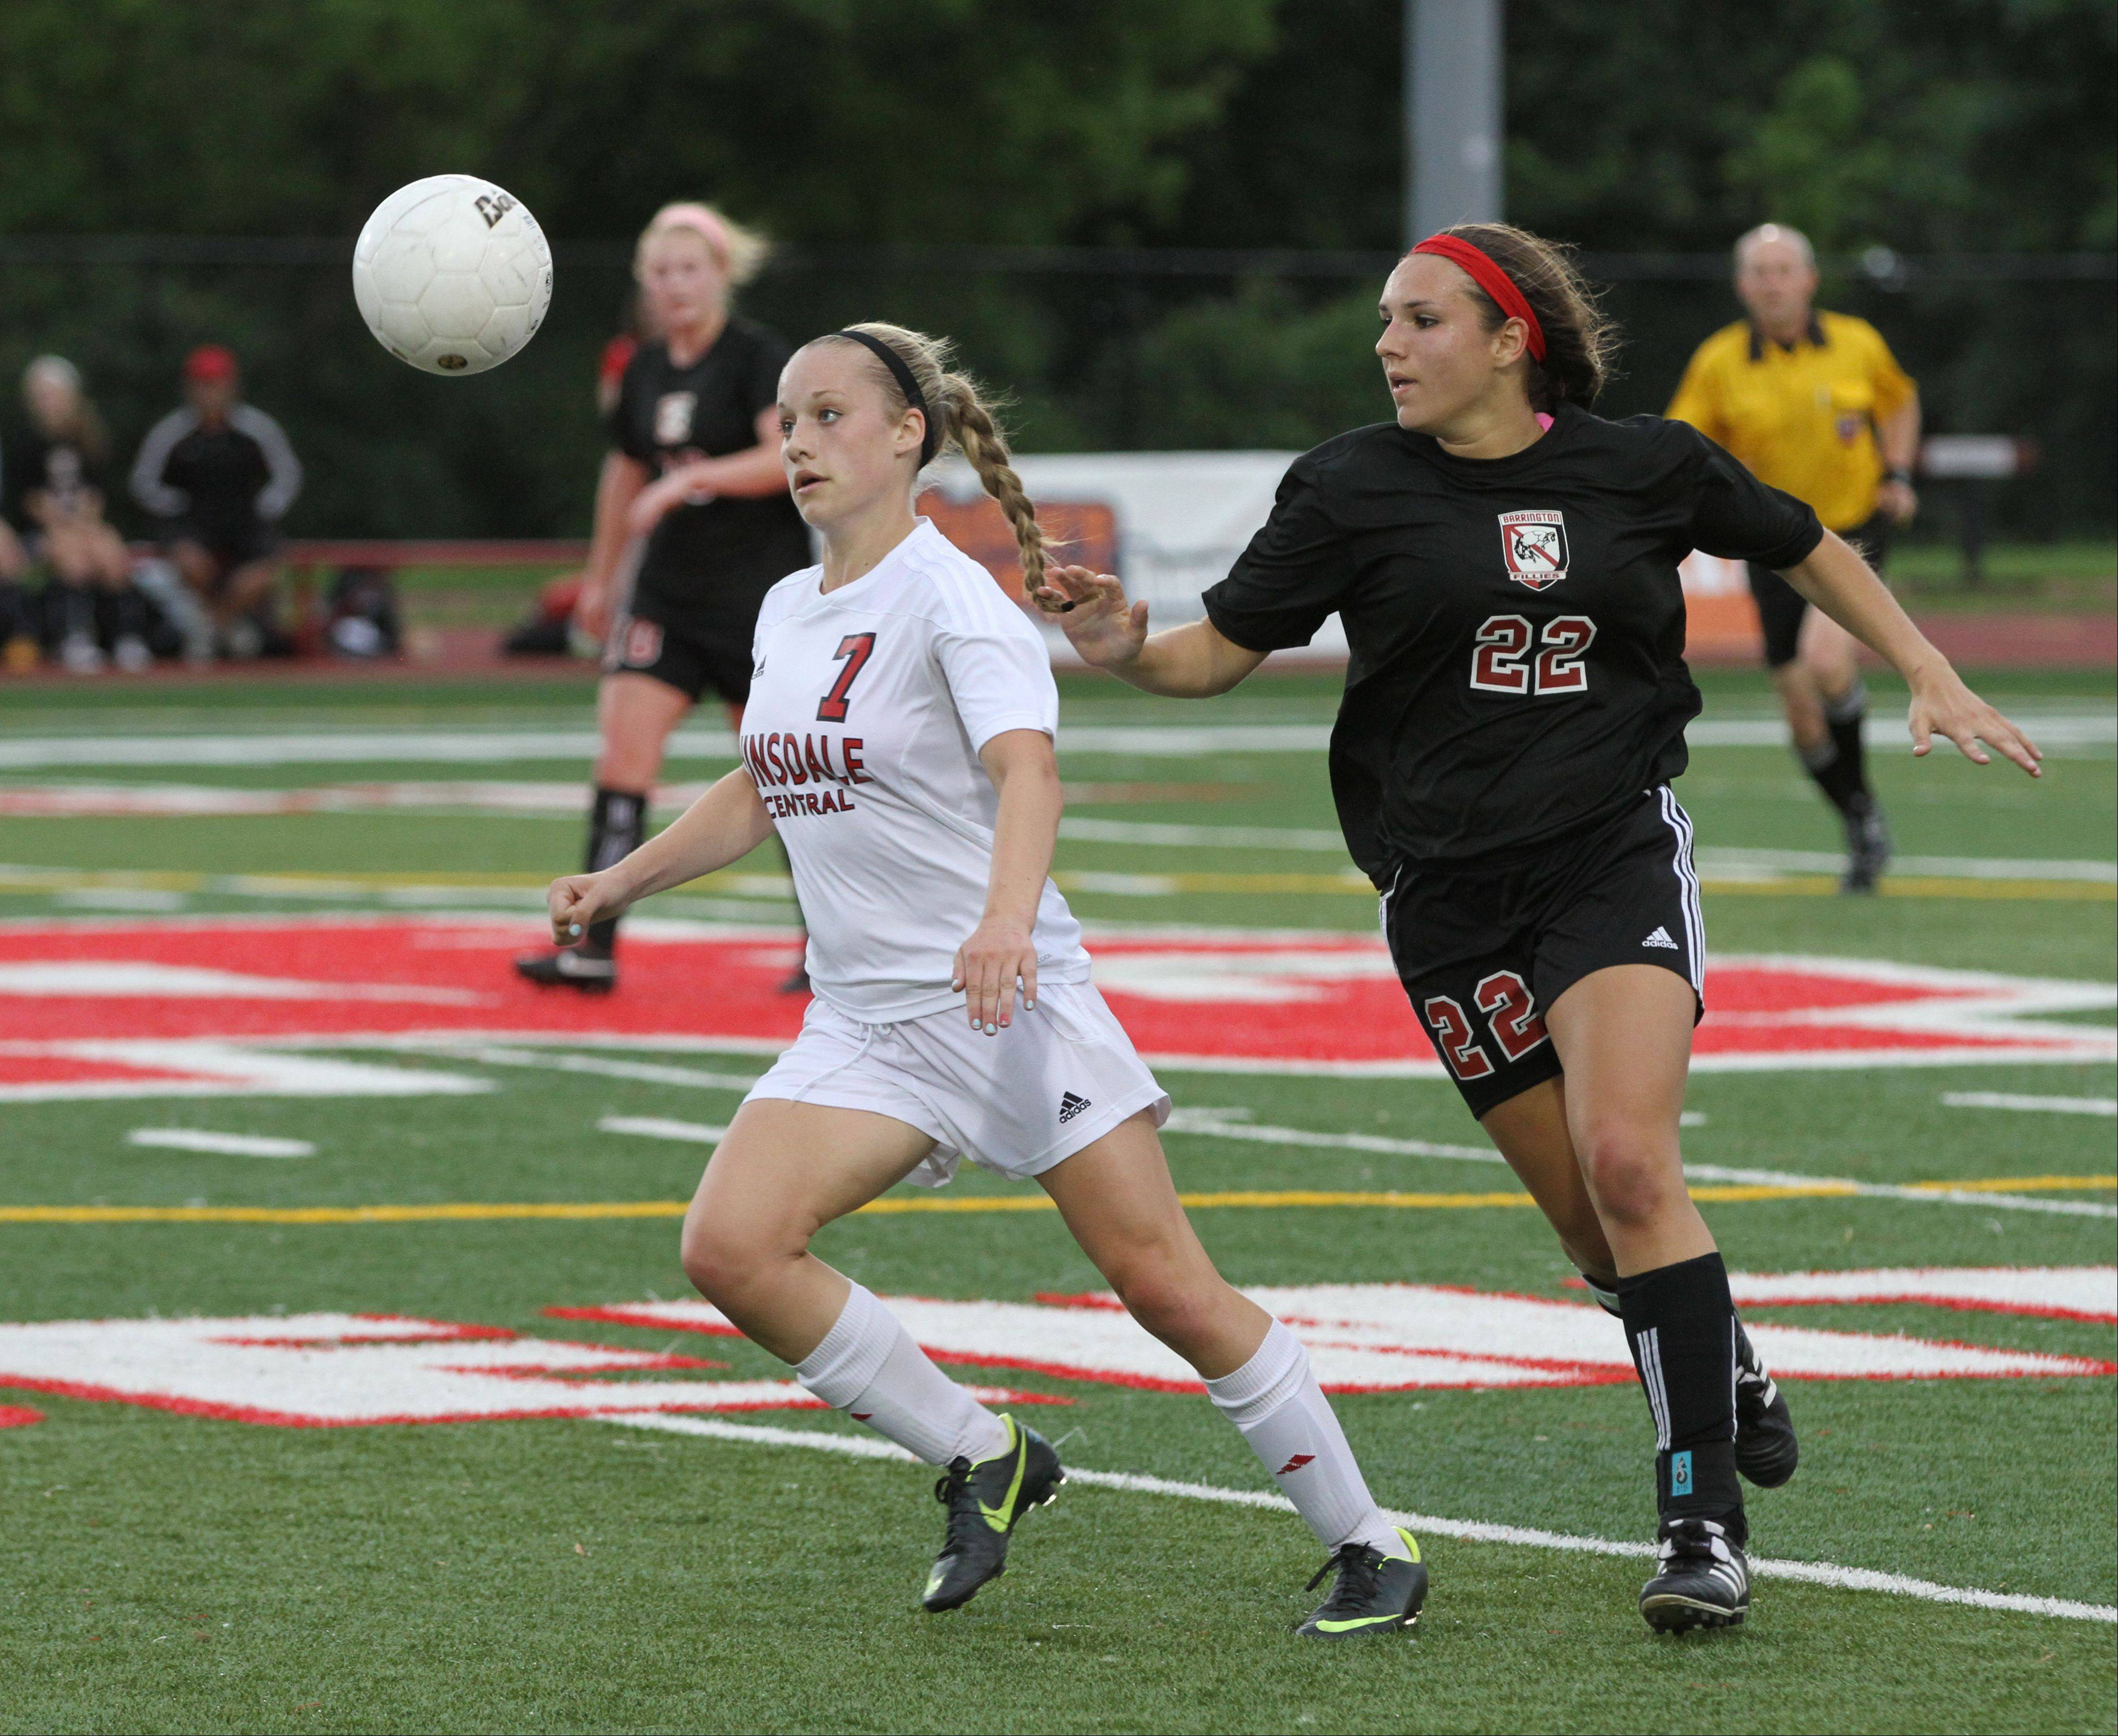 Hinsdale Central's Alison Cerny, left, battles Barrington's Mia Calamari for the ball in the Class 3A girls soccer state semifinals Friday at North Central College. Cerny had the goal in the Red Devils' 1-0 victory.